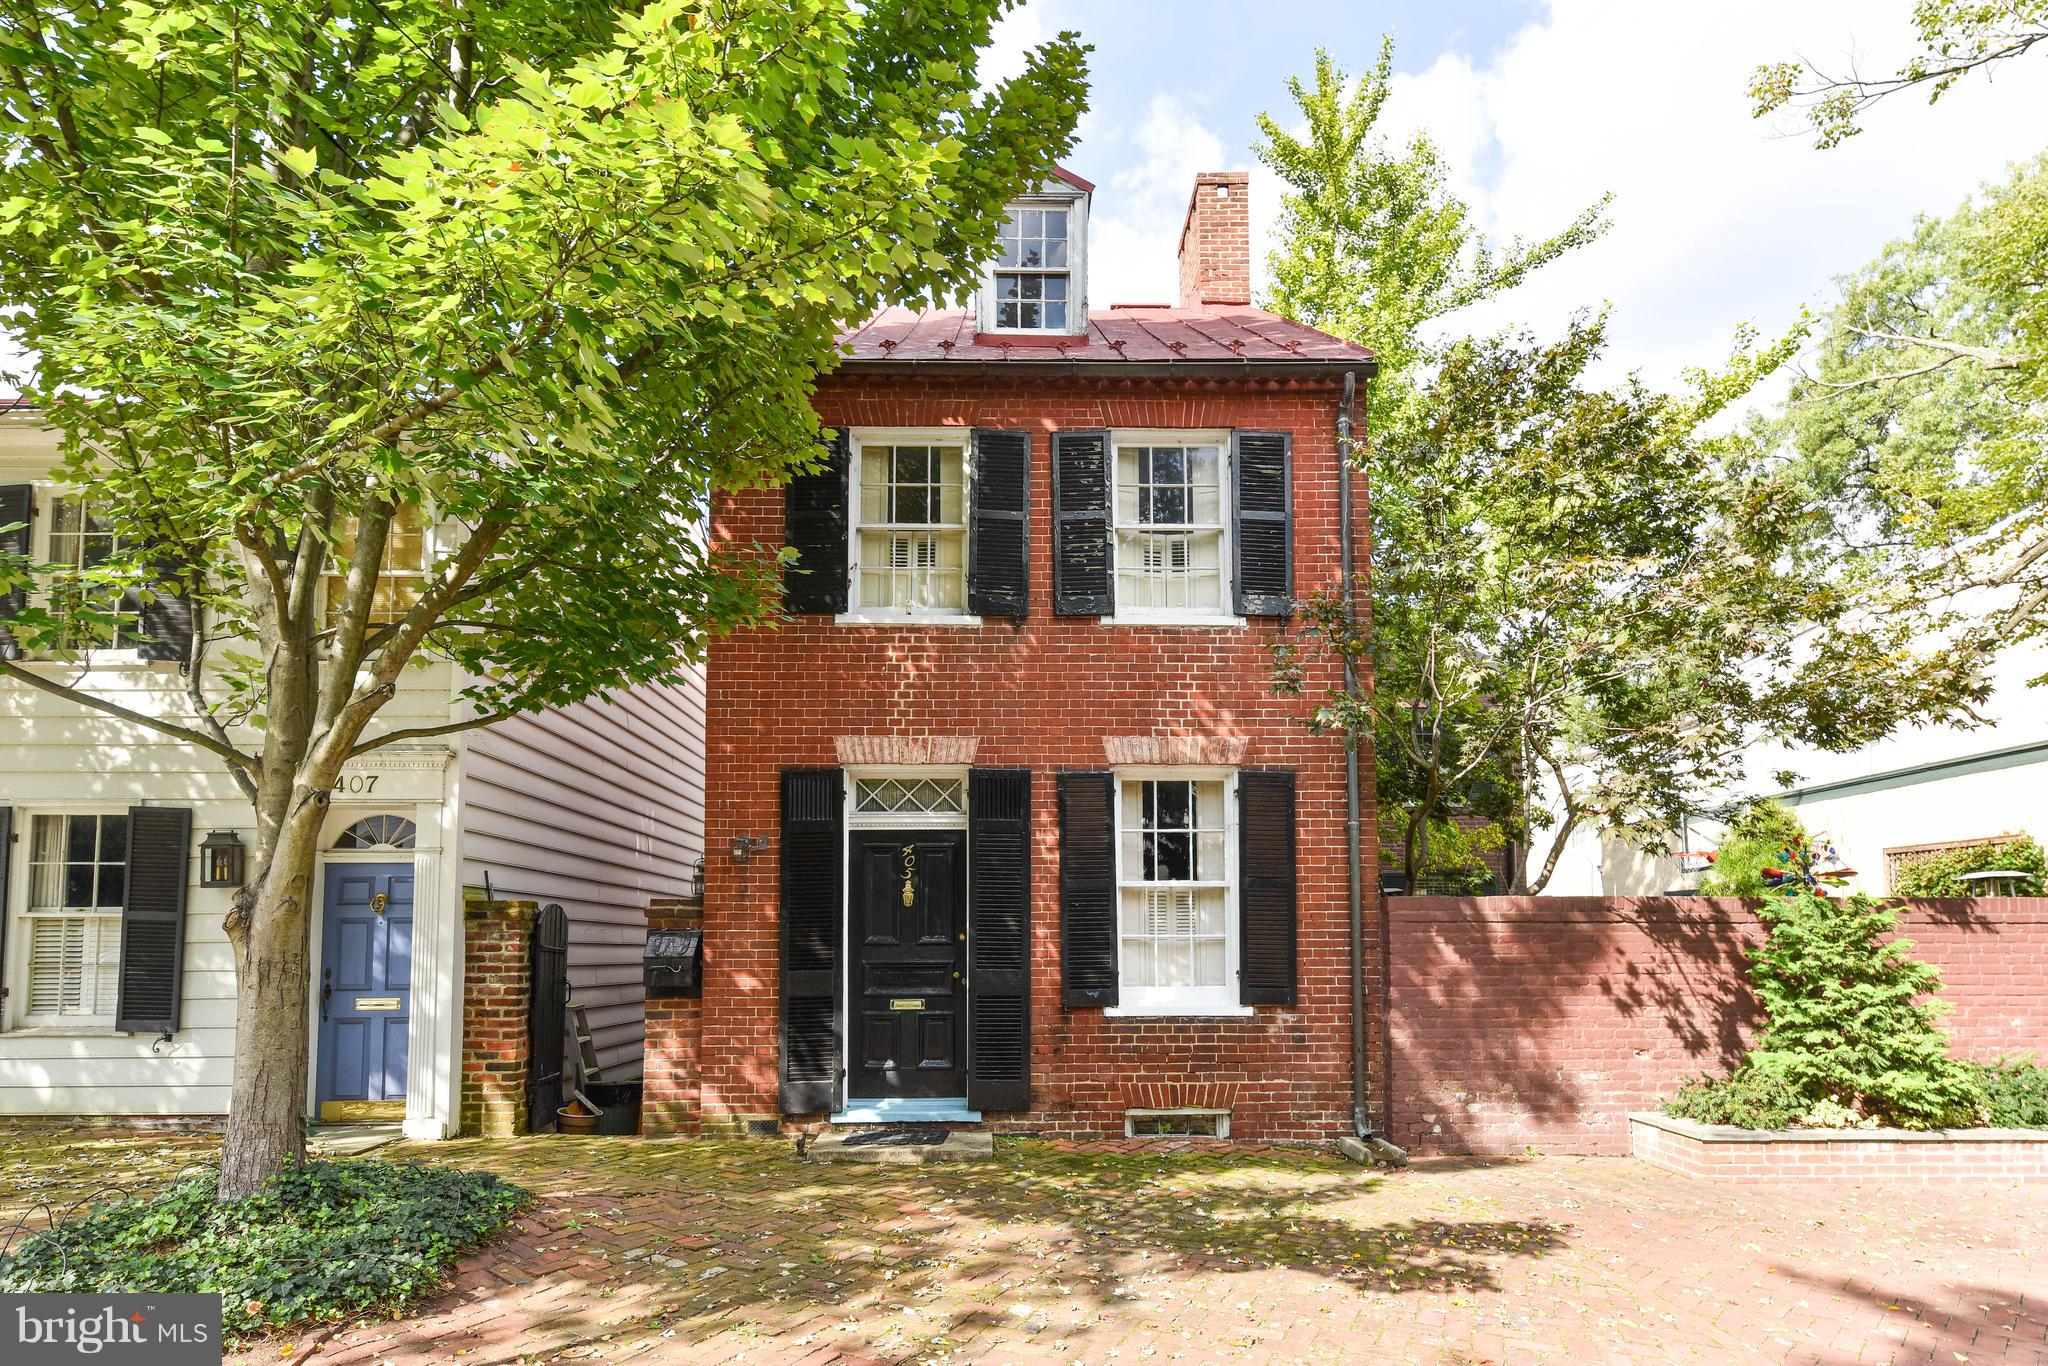 Beautiful historic brick home located in the heart of SE Quadrant Old Town just 3 blocks to King Street. Stunning original details throughout, 3 fireplaces, large, private garden with potential for off-street parking. Abundant natural light, double parlor and separate dining room. Unique opportunity to fix up and make this gem your very own.  As-is sale.